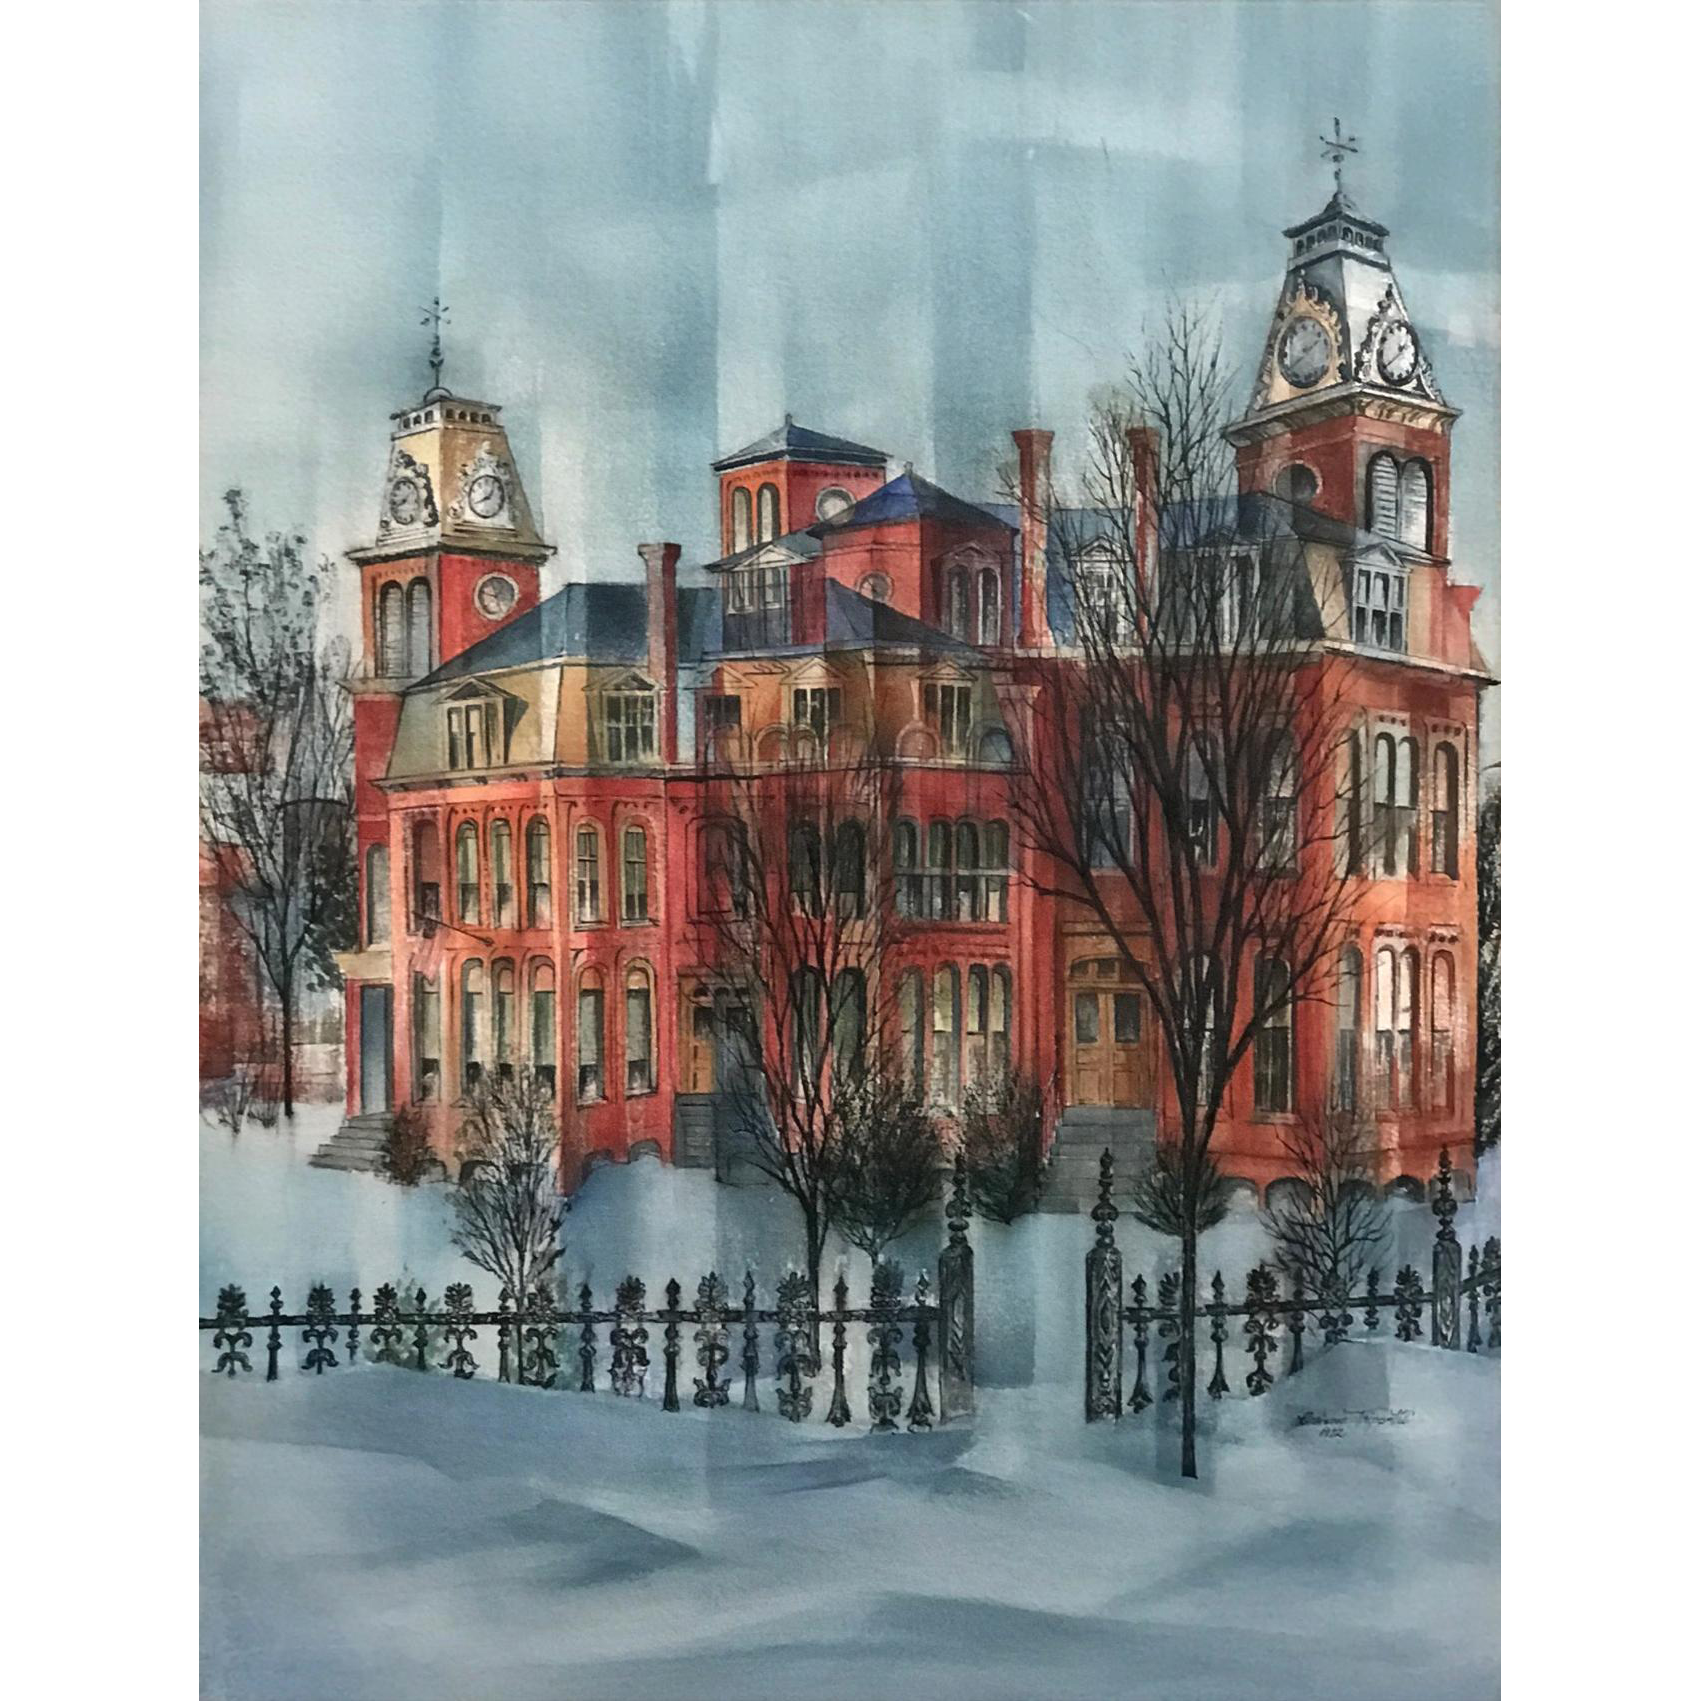 Corinne Trippetti Watercolor Painting - Ash Street School, Manchester NH 1972